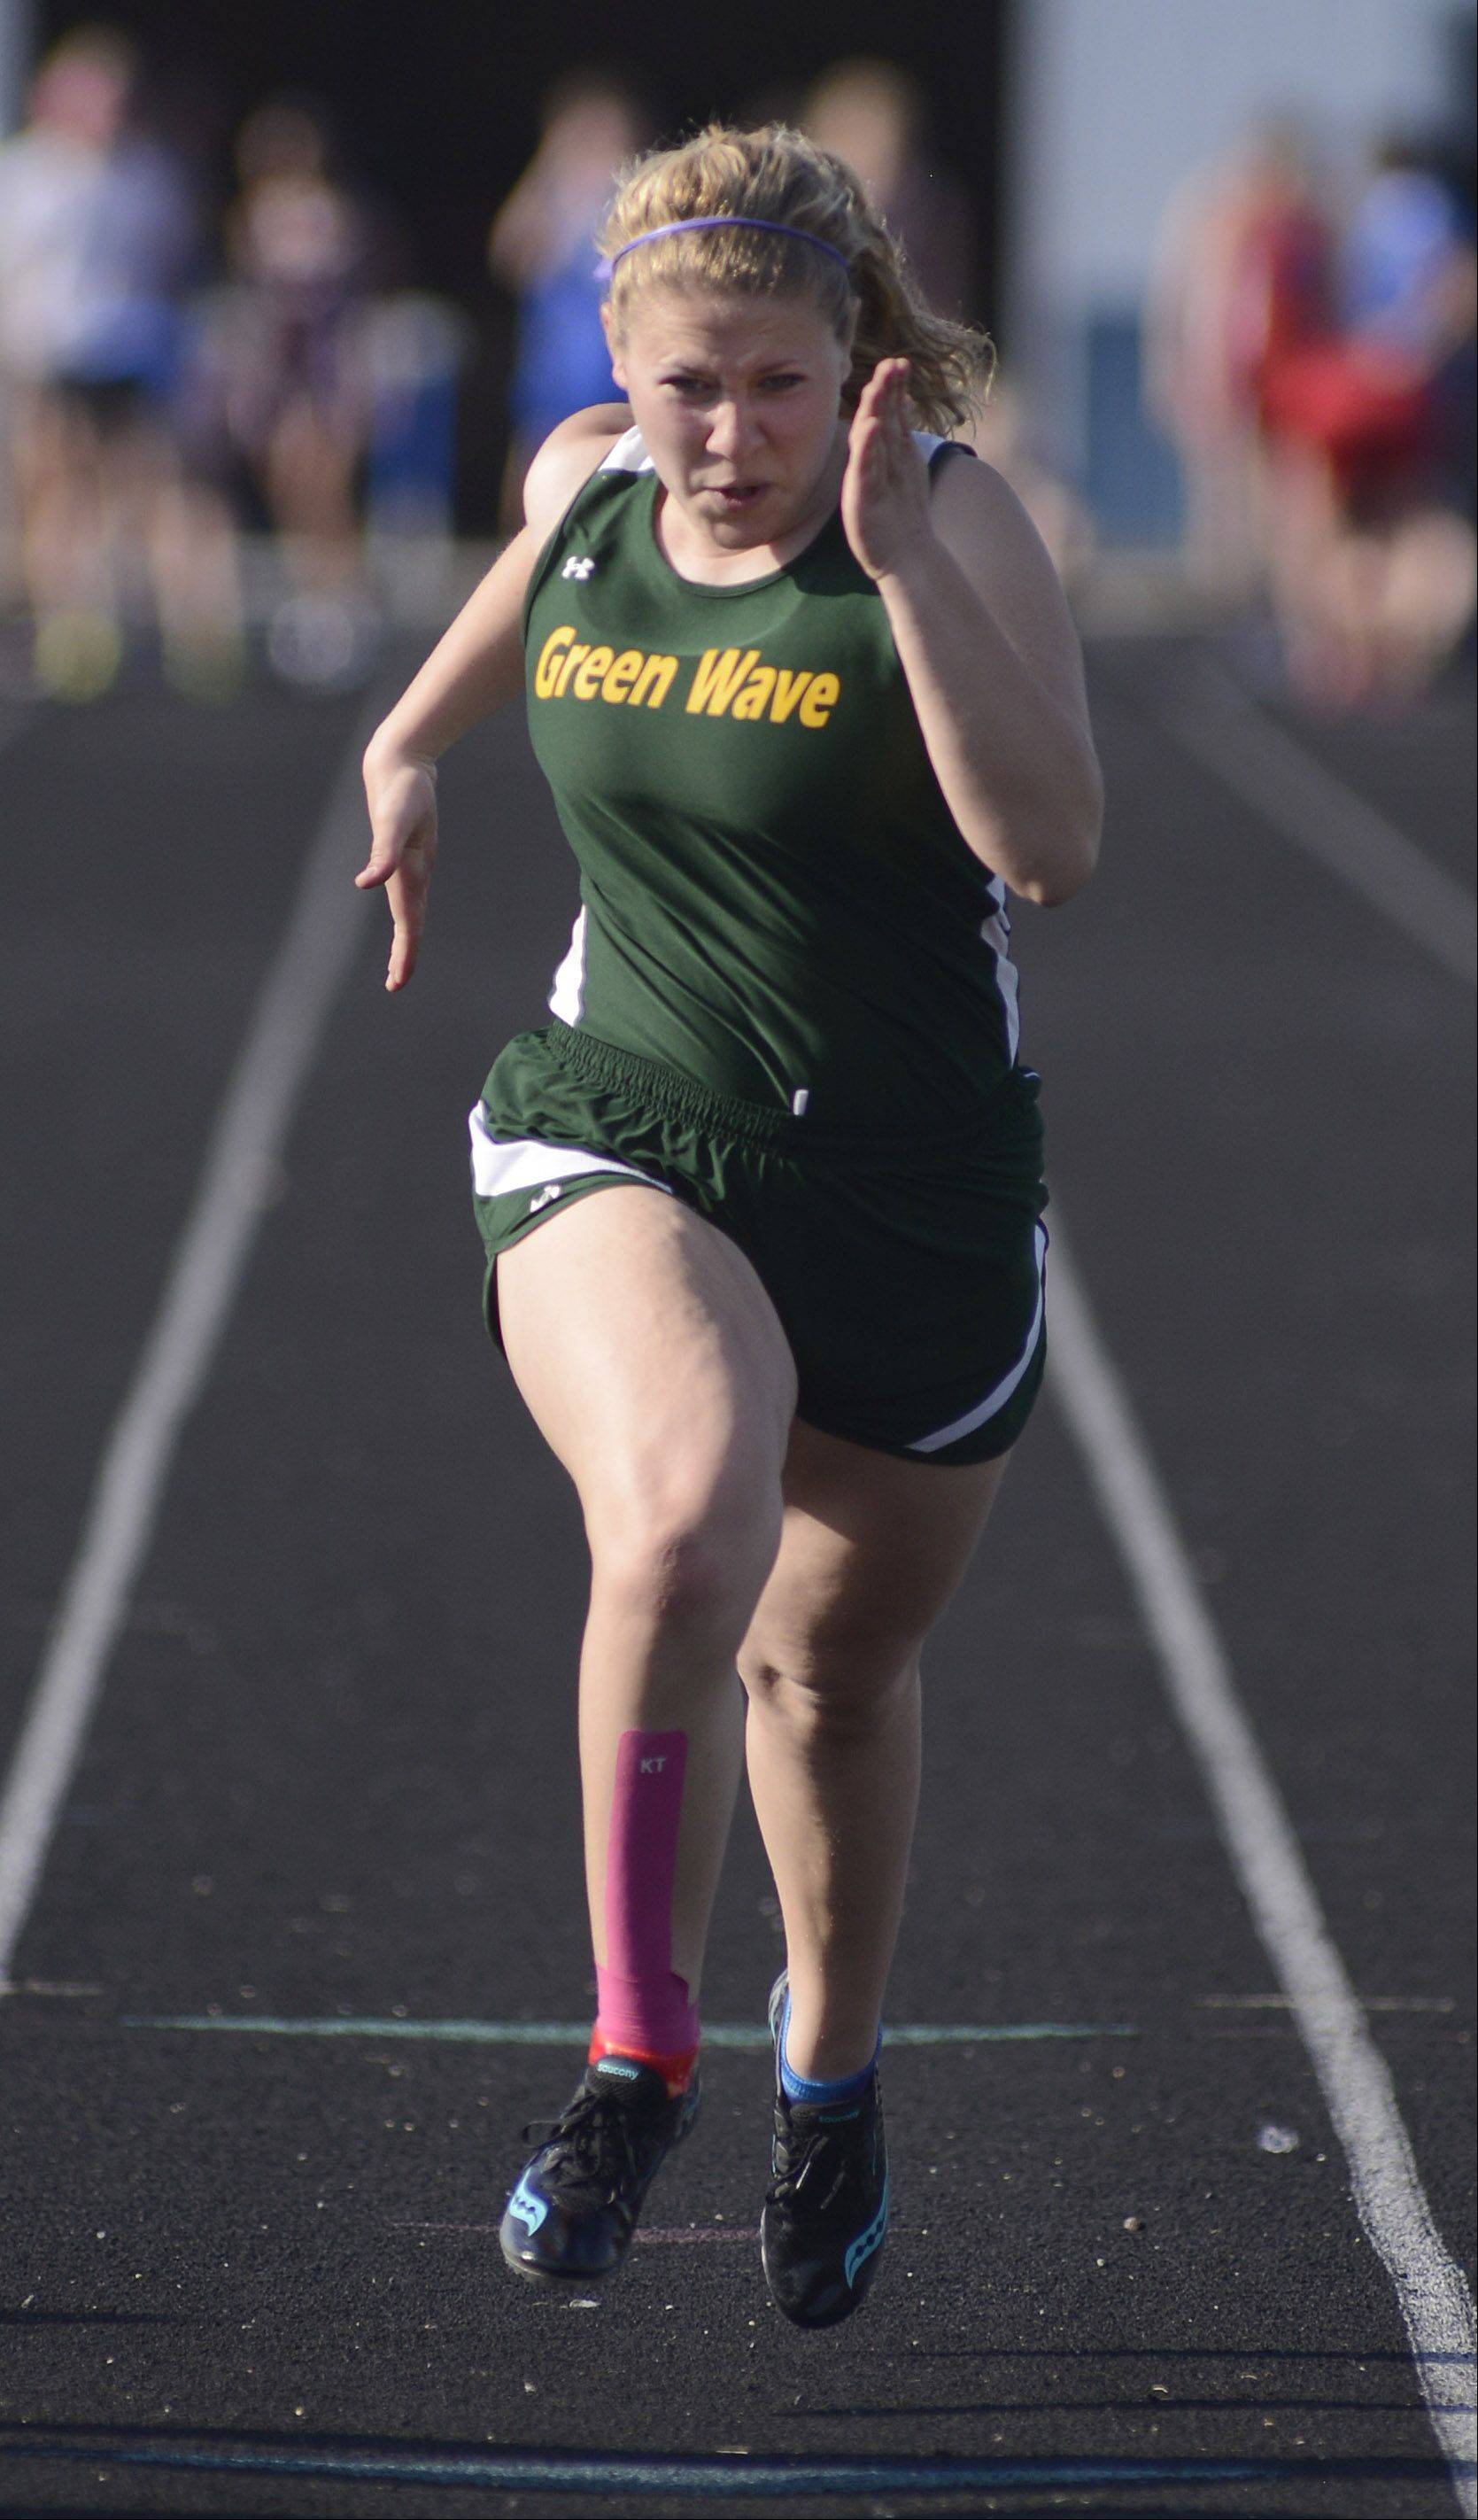 St. Edward's Clarissa Olenek in the first heat of the 100 meter dash at the Suburban Christian Conference on Wednesday, May 1.